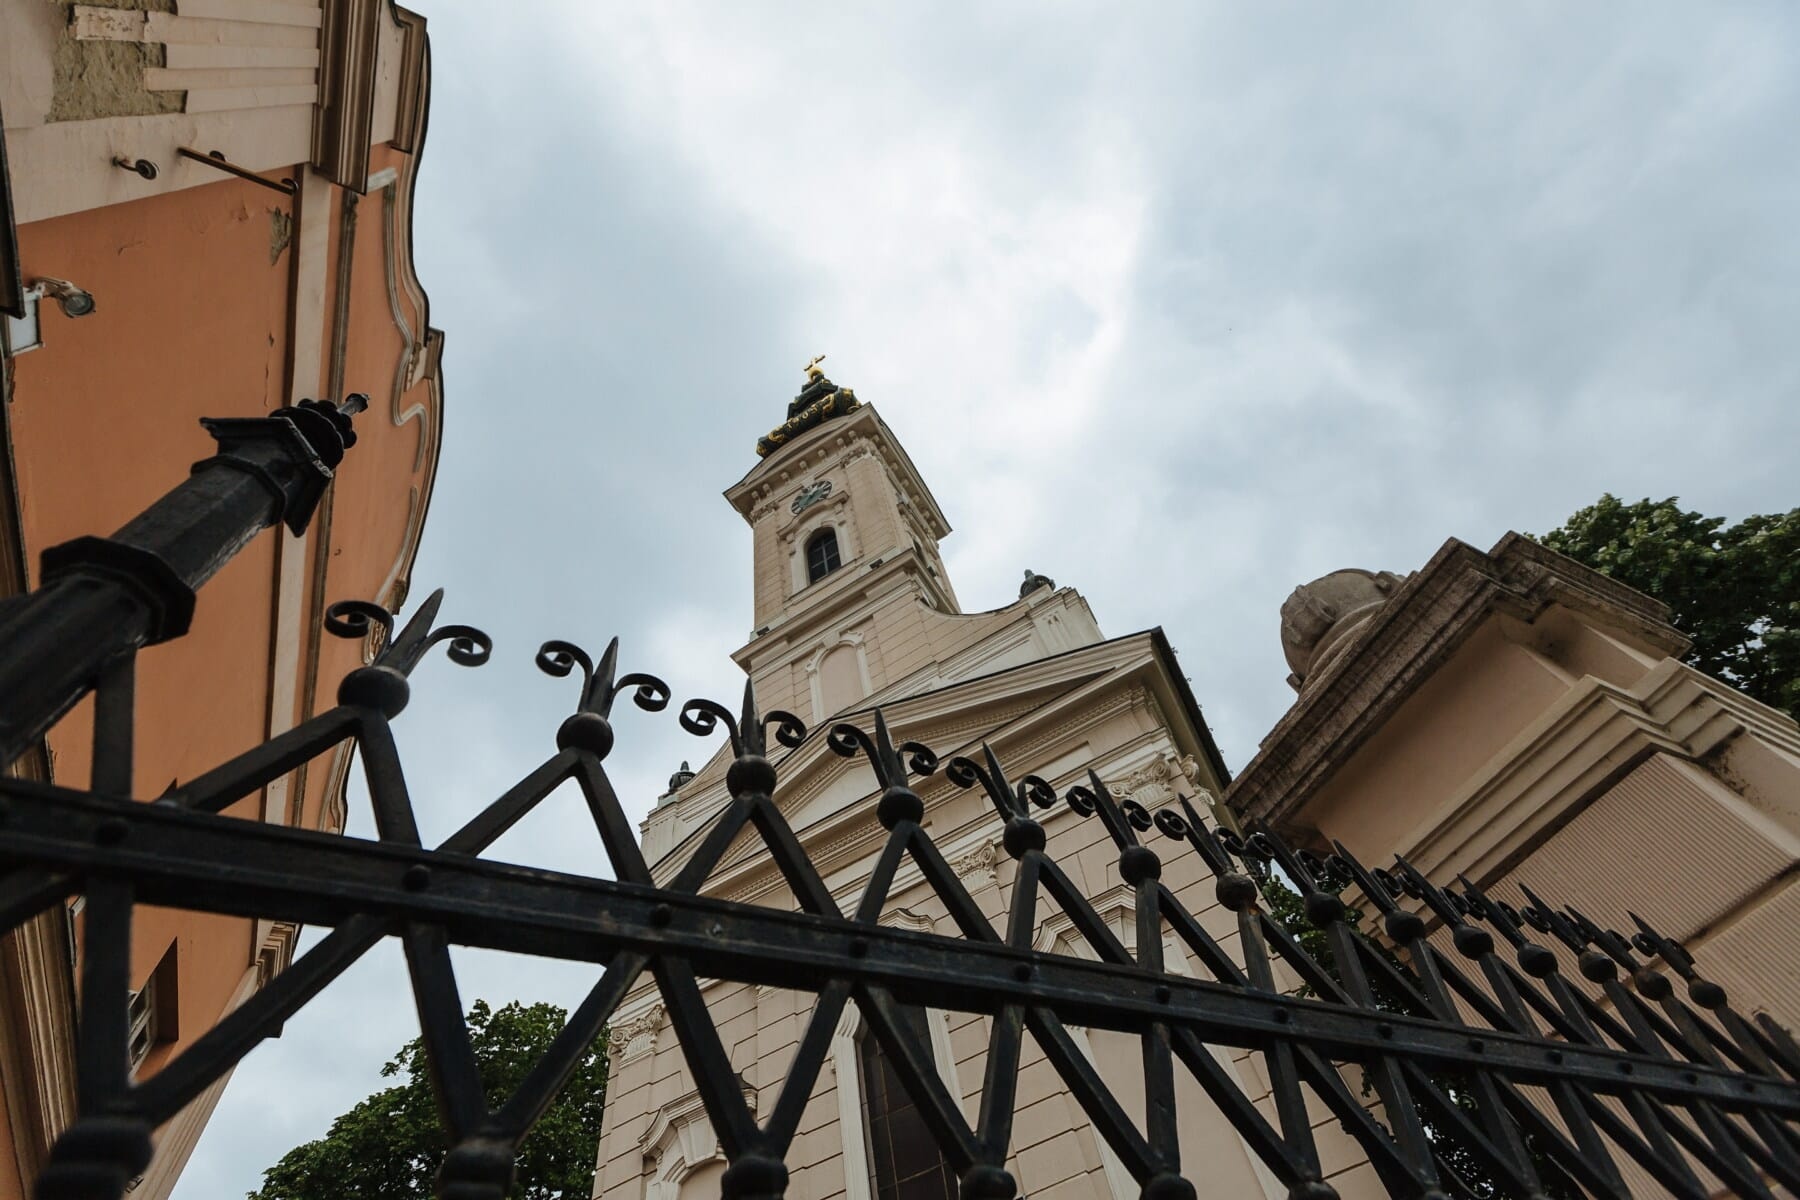 church, fence, cast iron, cathedral, architecture, tower, old, traditional, religion, outdoors